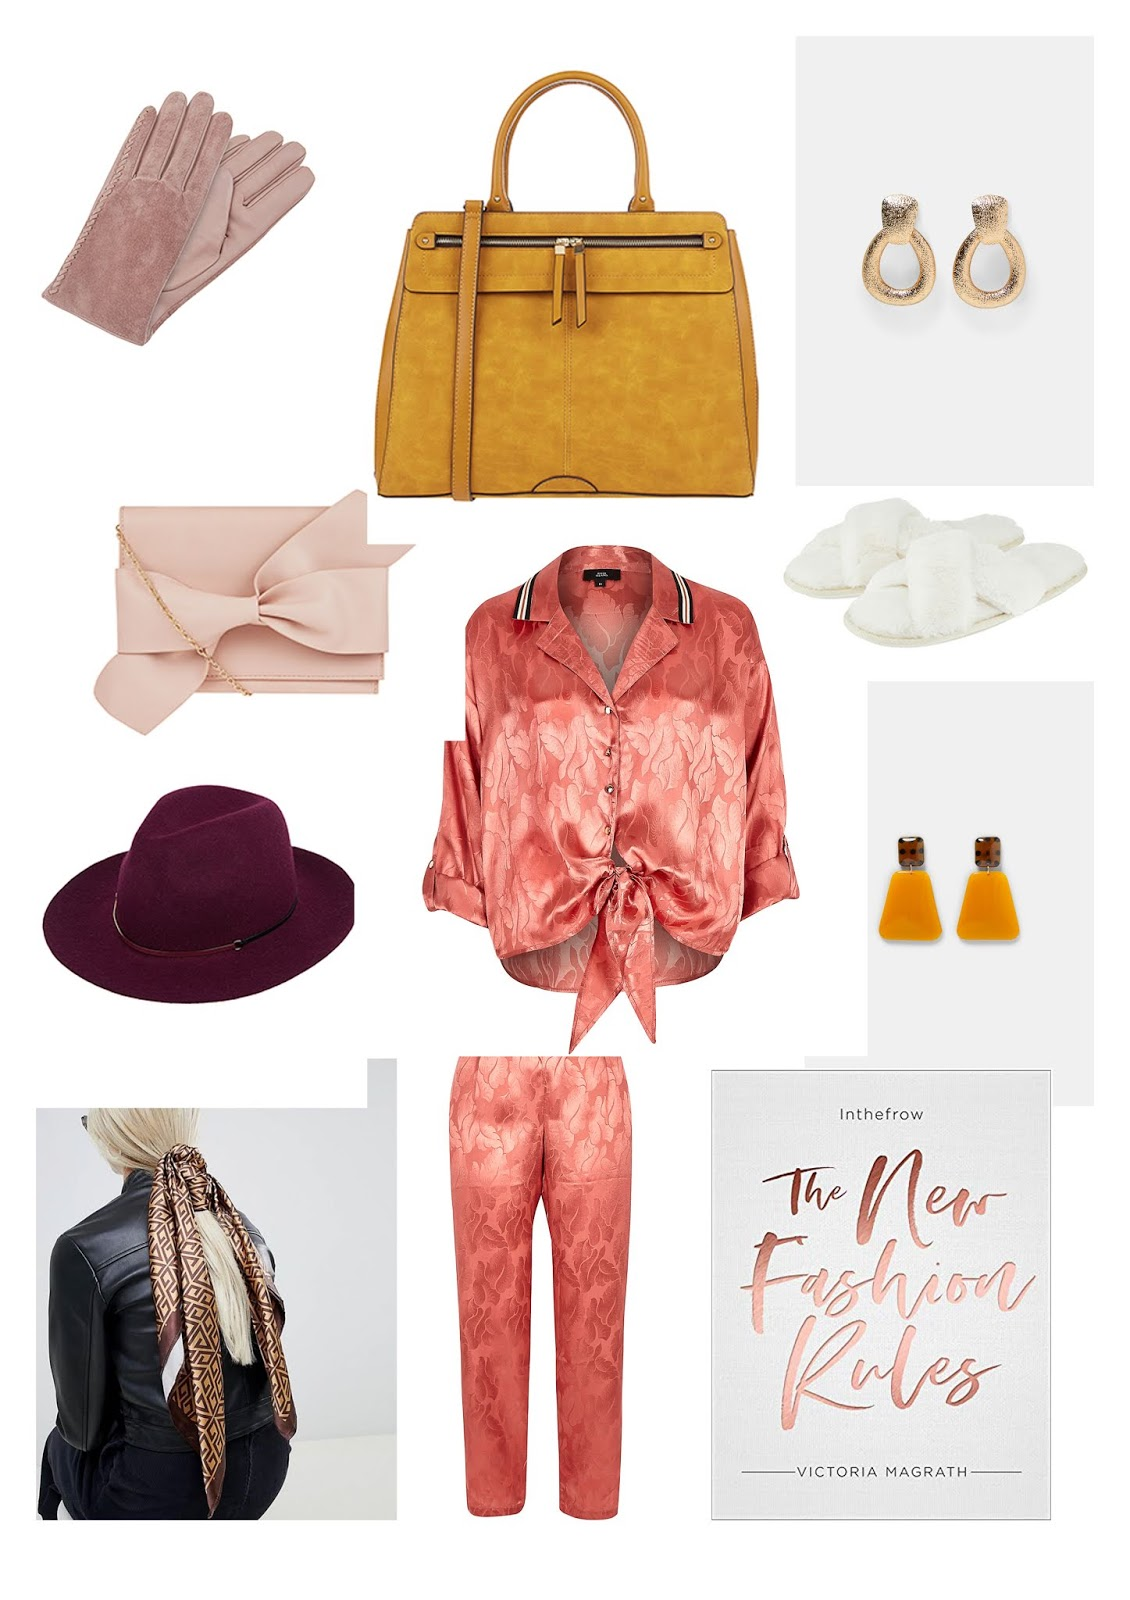 Christmas Gift Guide: Accessories And Sleepwear